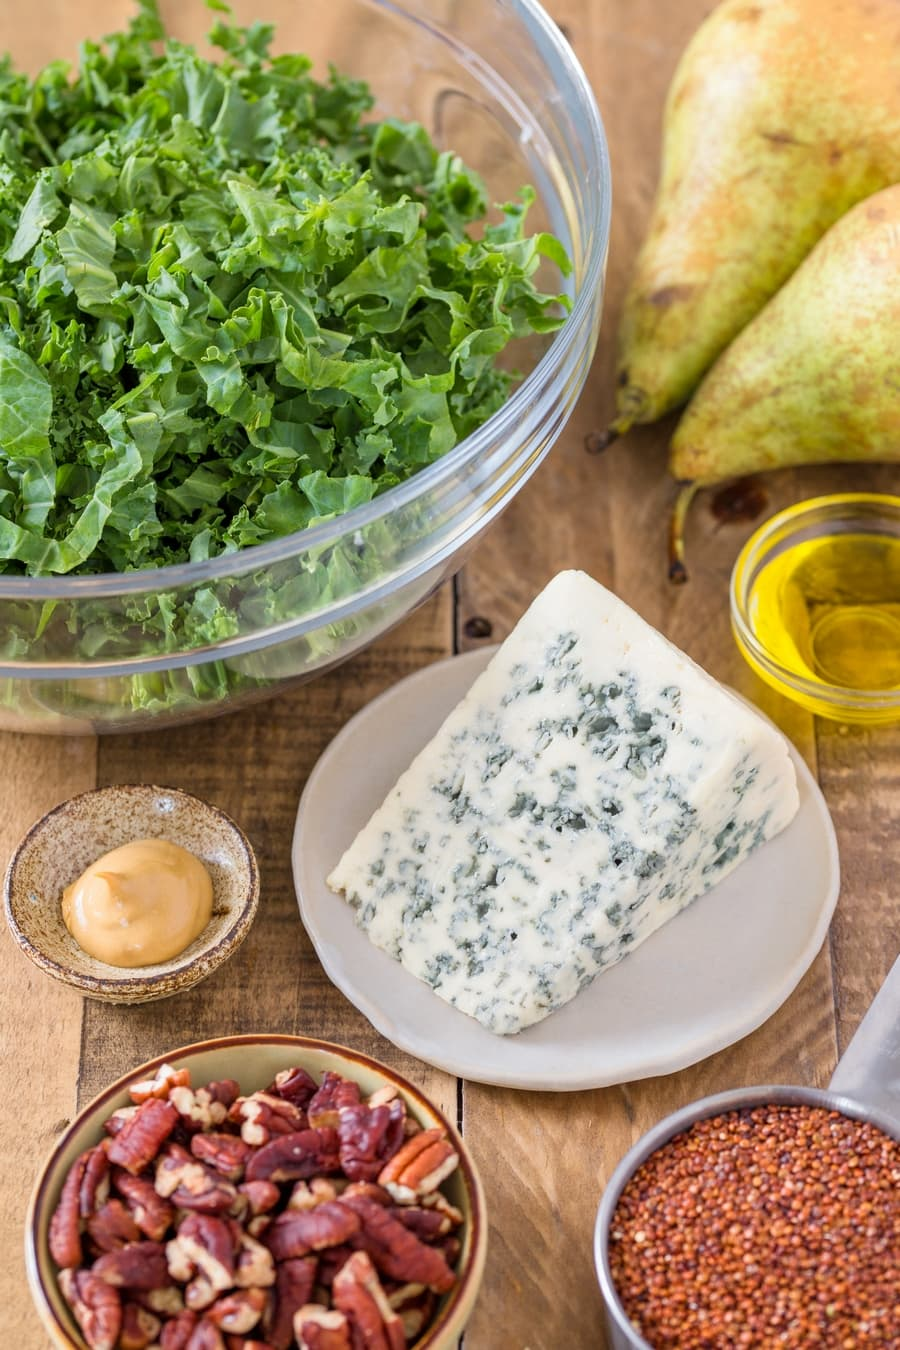 A block of blue cheese surronded by kale, pecans, pears, quinoa and condiments in bowls.